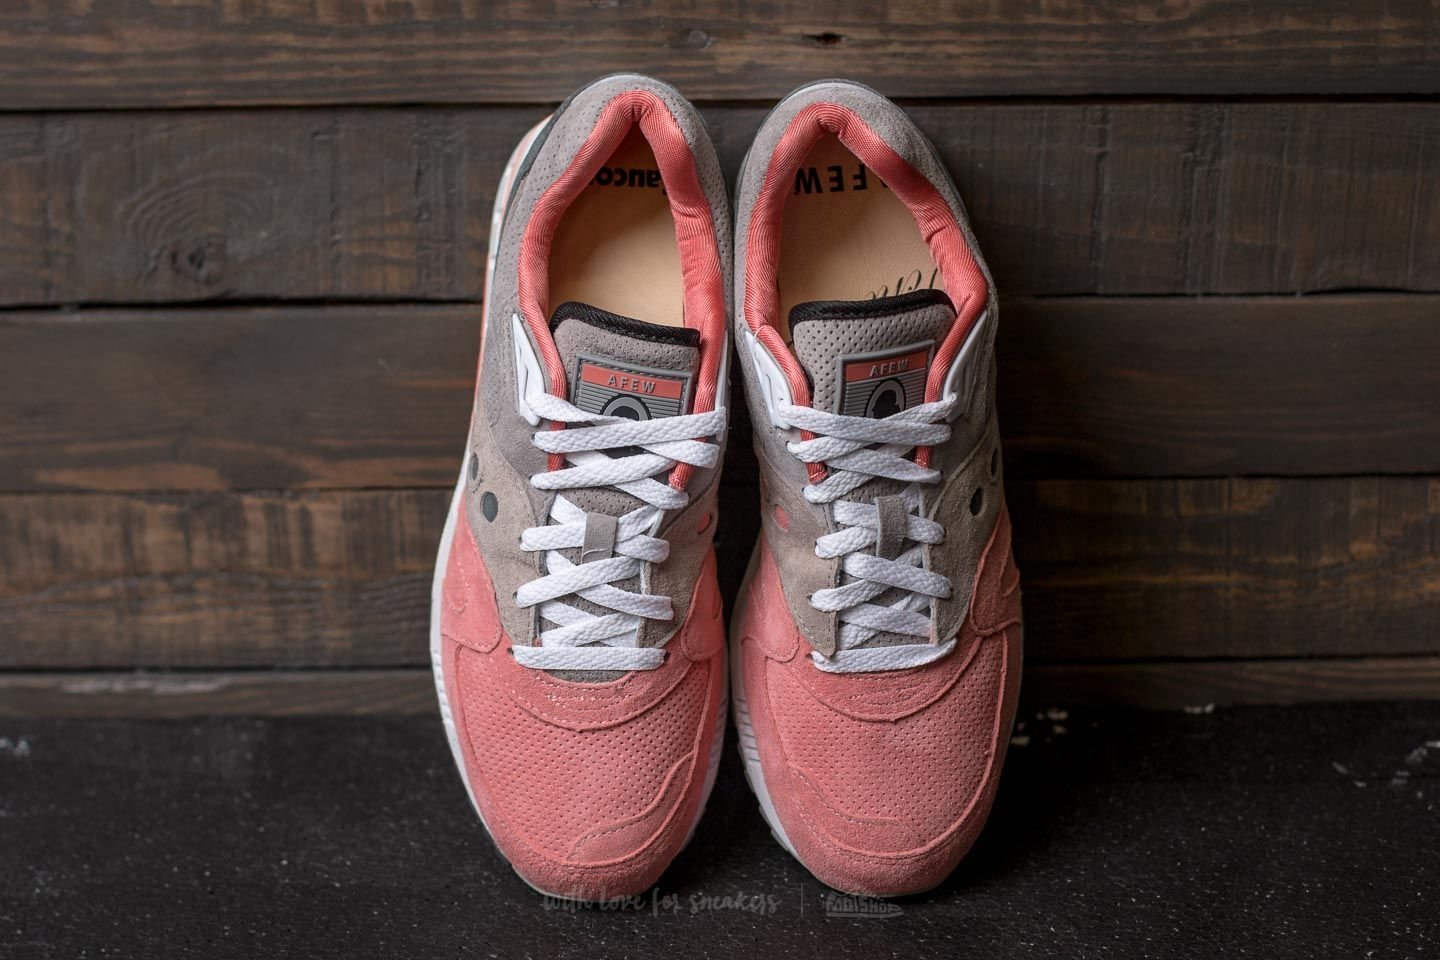 reputable site 89af9 9a464 Saucony x Afew Shadow Master 5000